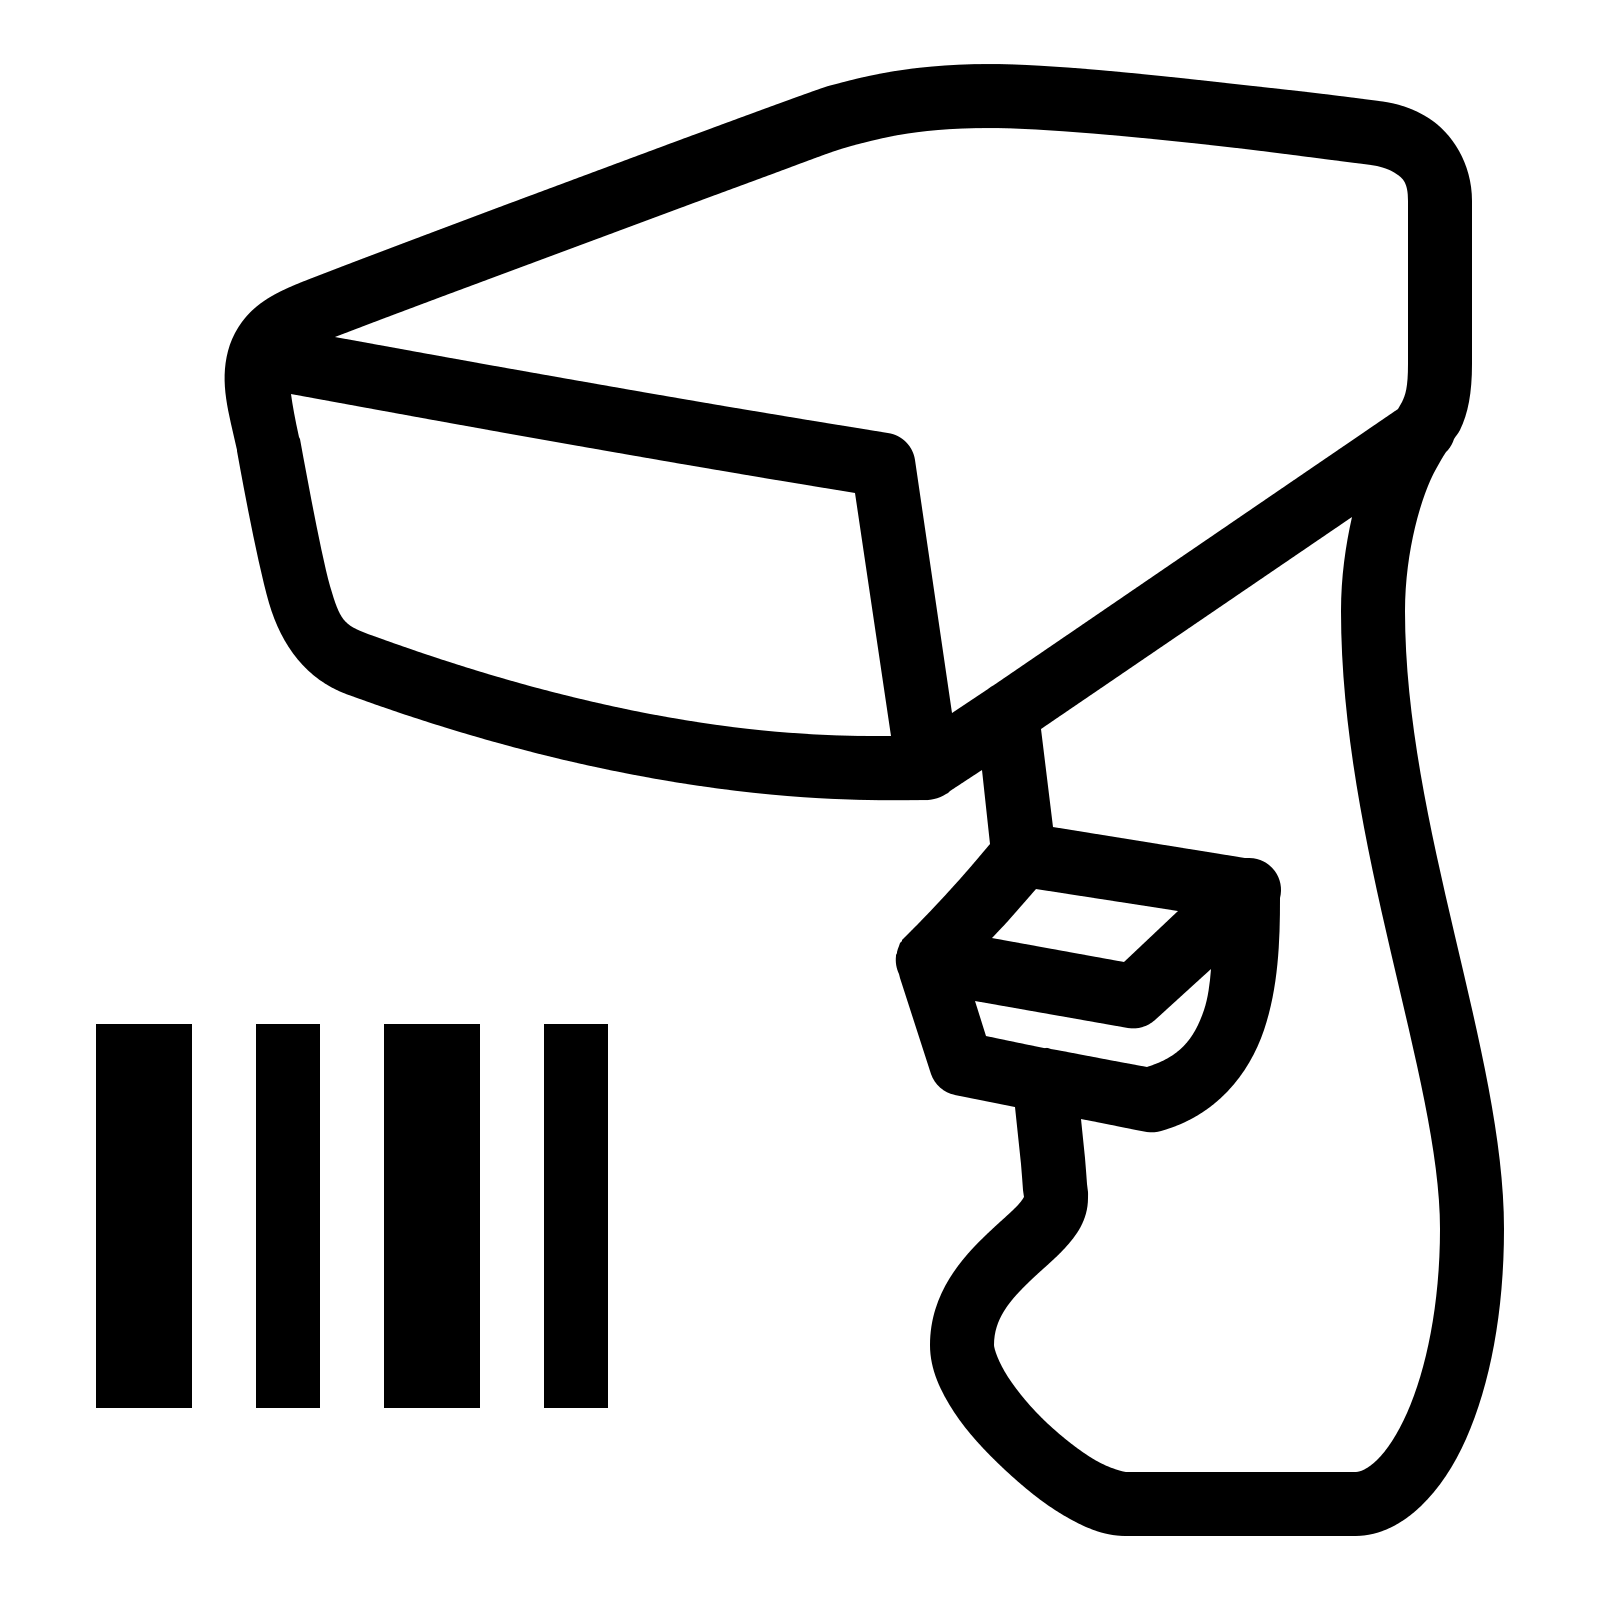 Barcode clipart barcode reader Barcode Icon Barcode PNG in